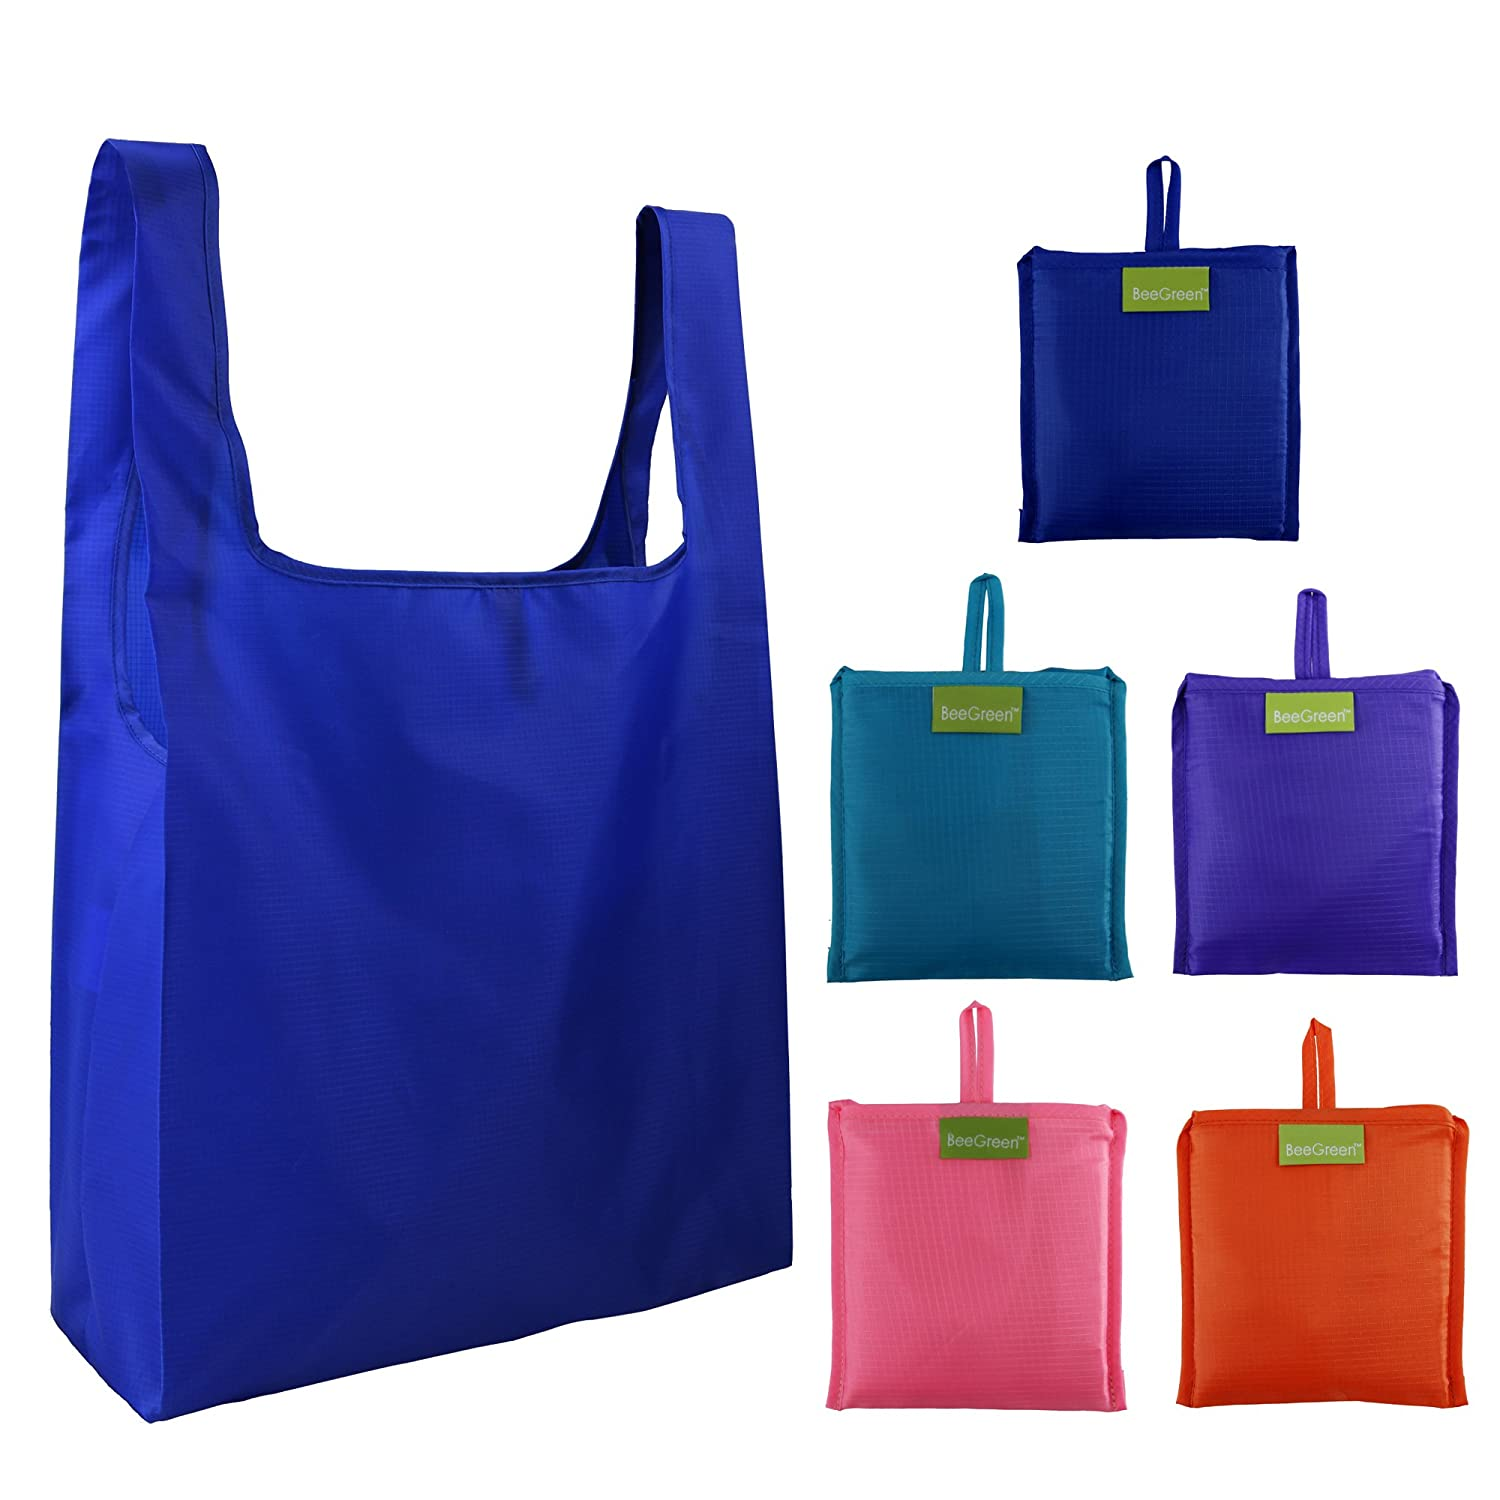 Best Reusable Grocery Bags in 2020